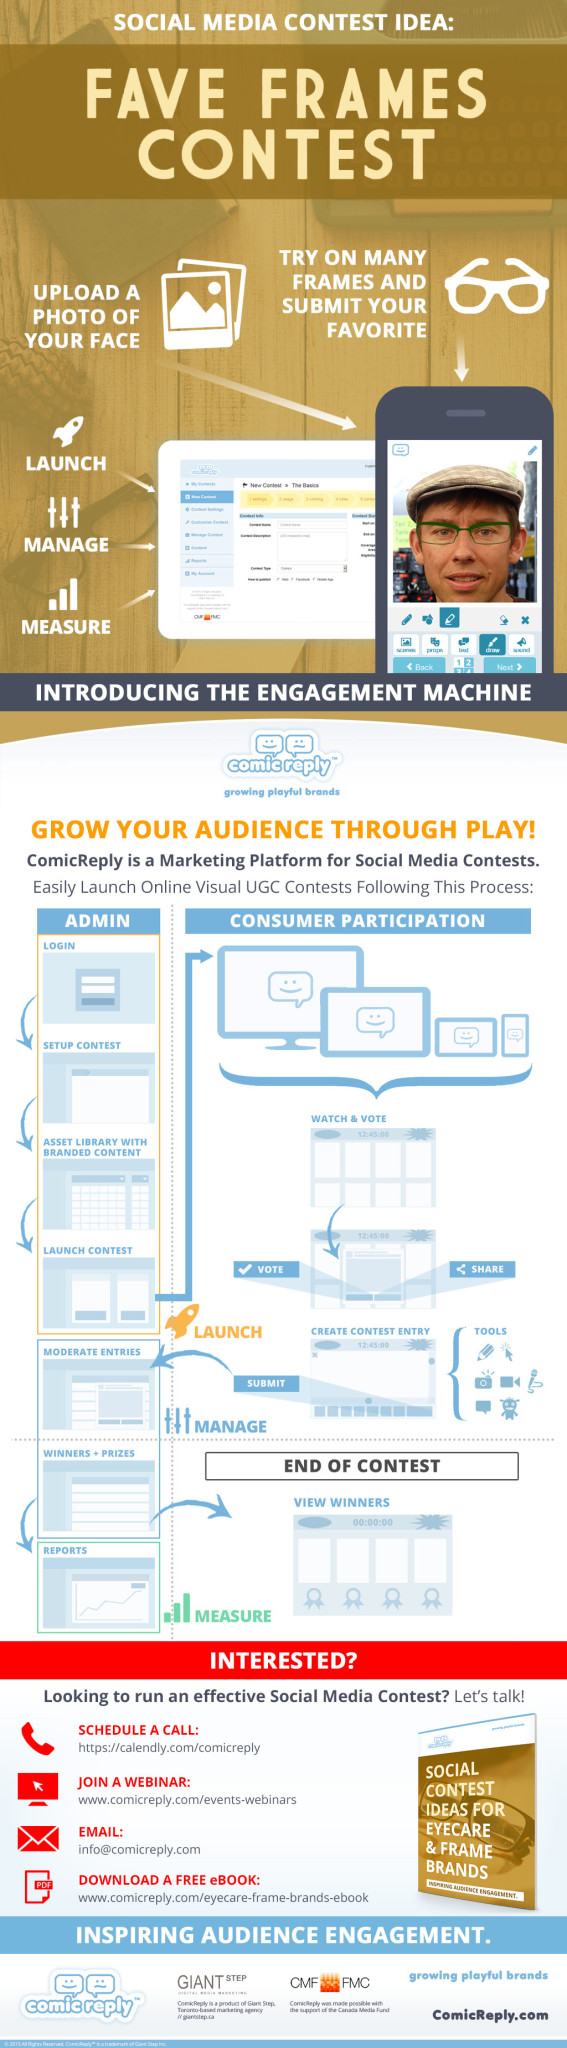 ComicReply-Social-Media-Fave-Frames-Contest-Idea-For-Eyeglasses-Marketing-Infographic